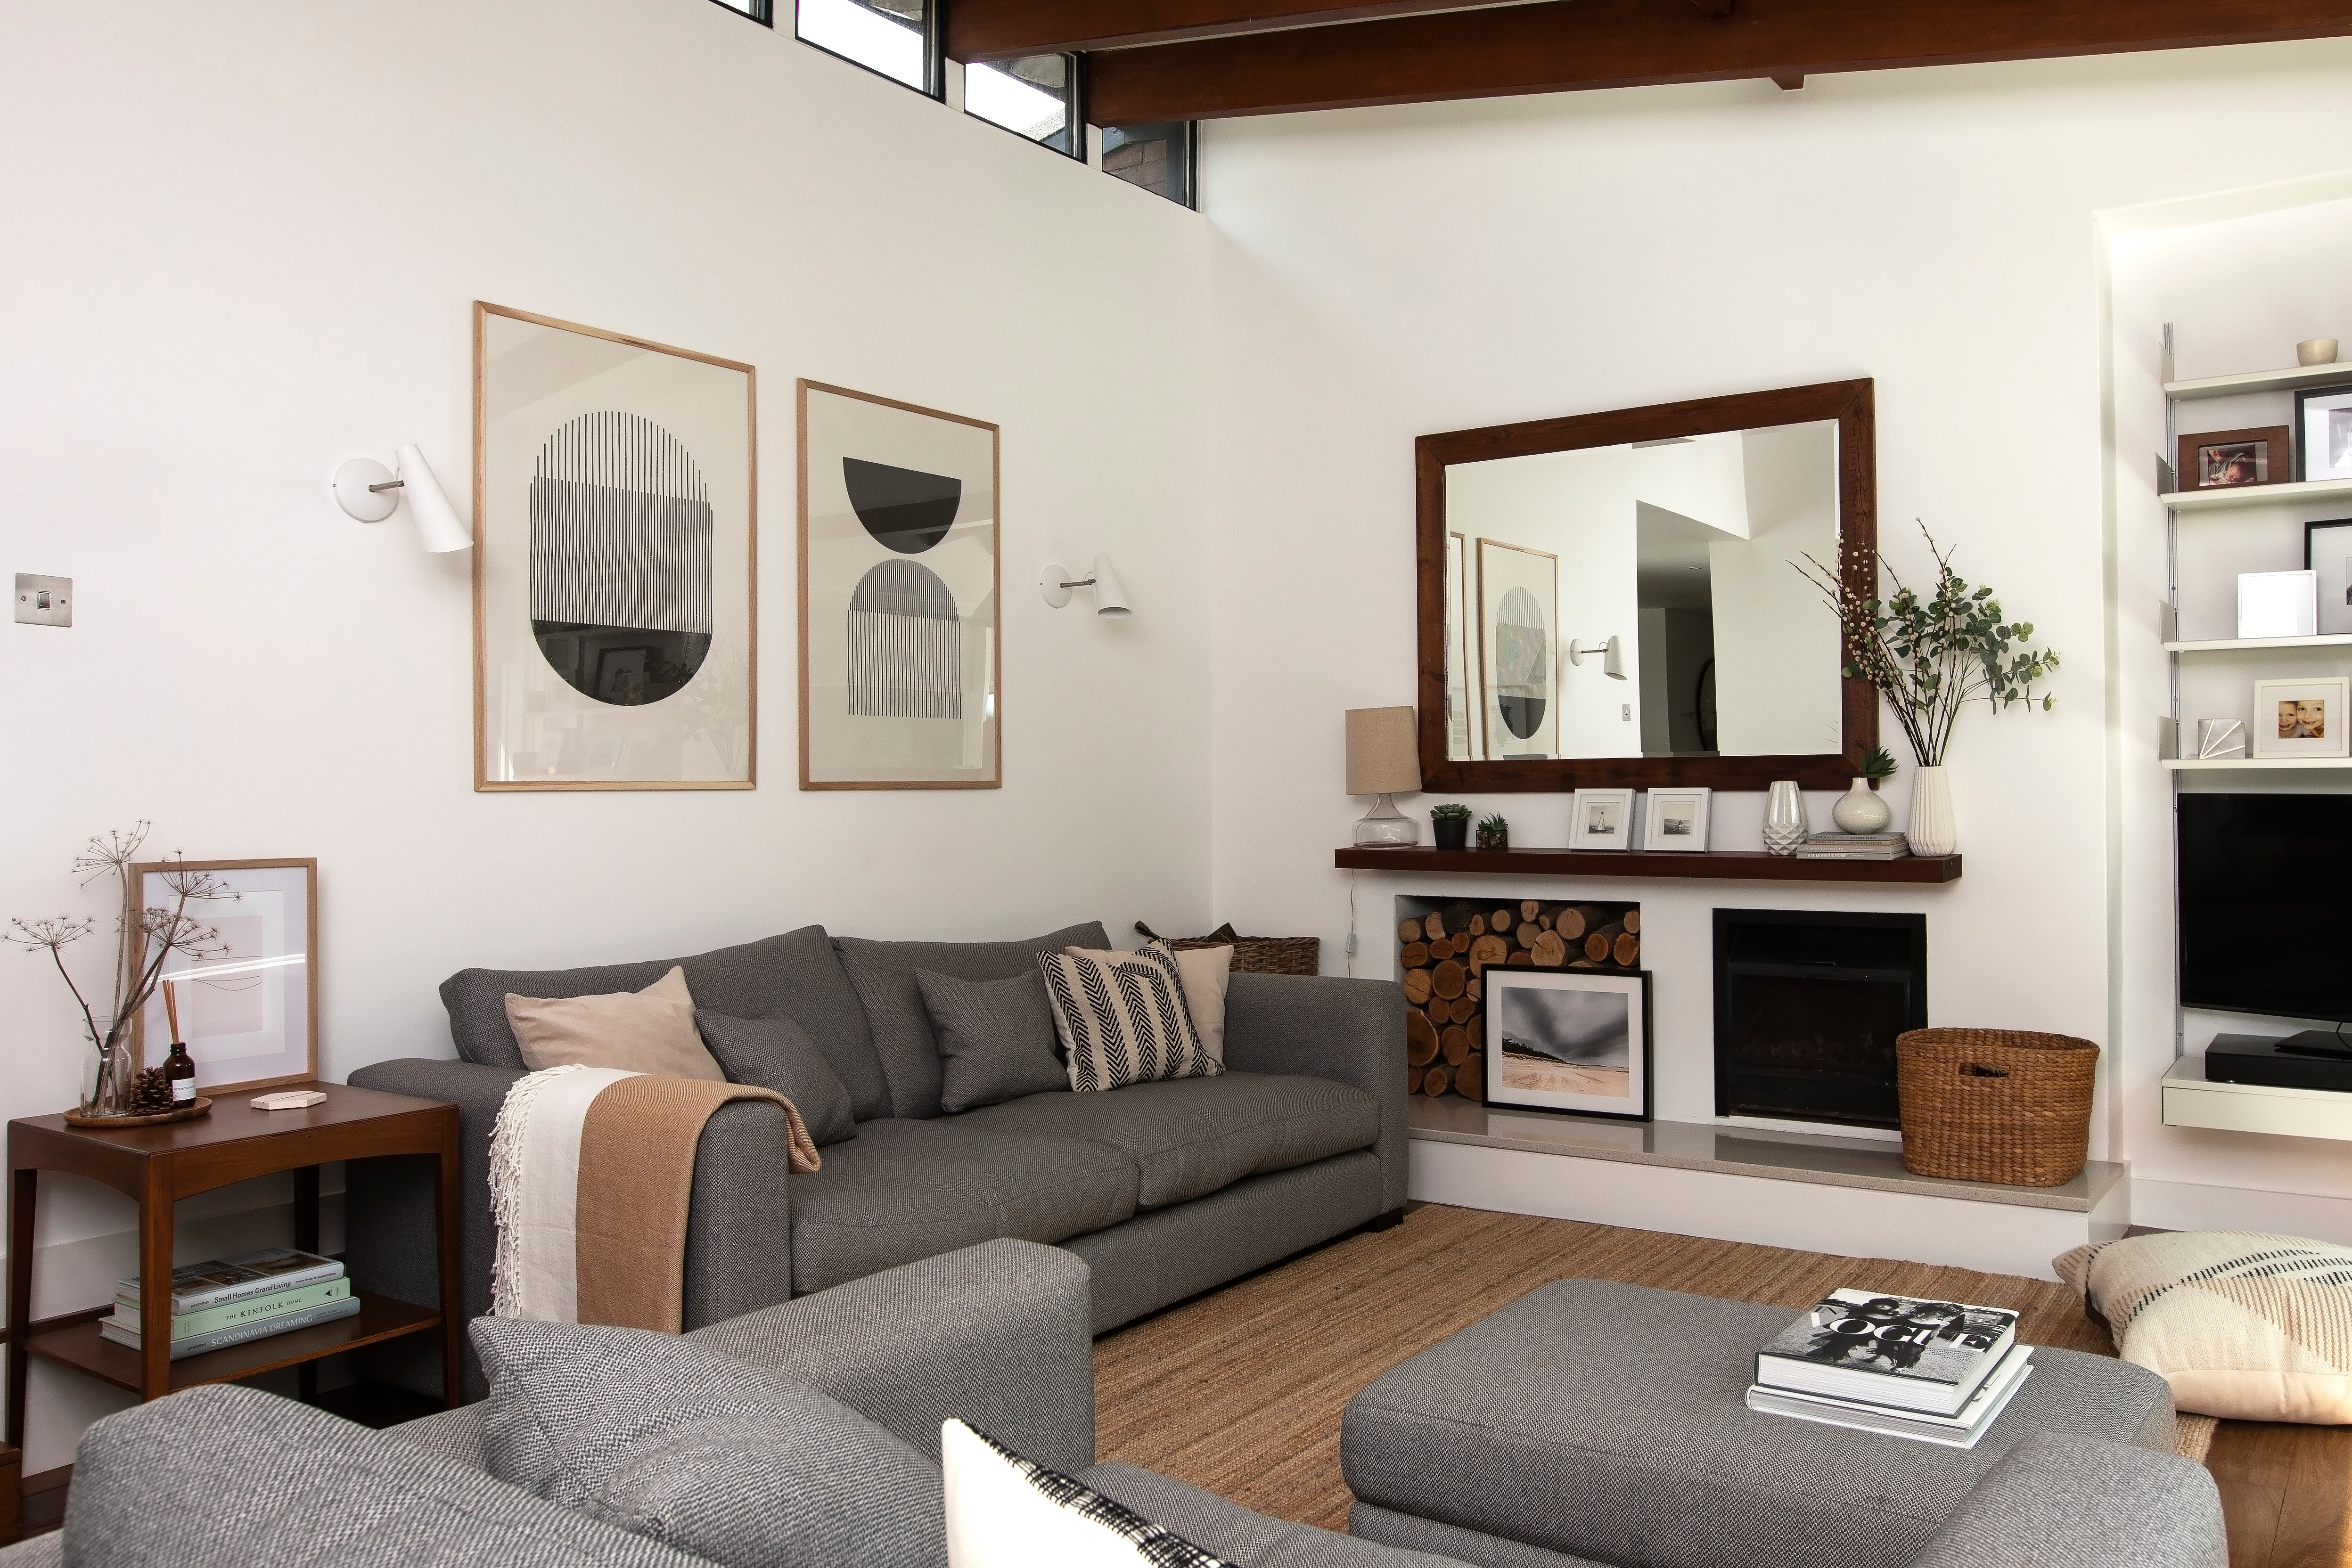 14 Grey And White Living Room Ideas To, Gray Couch Living Room Design